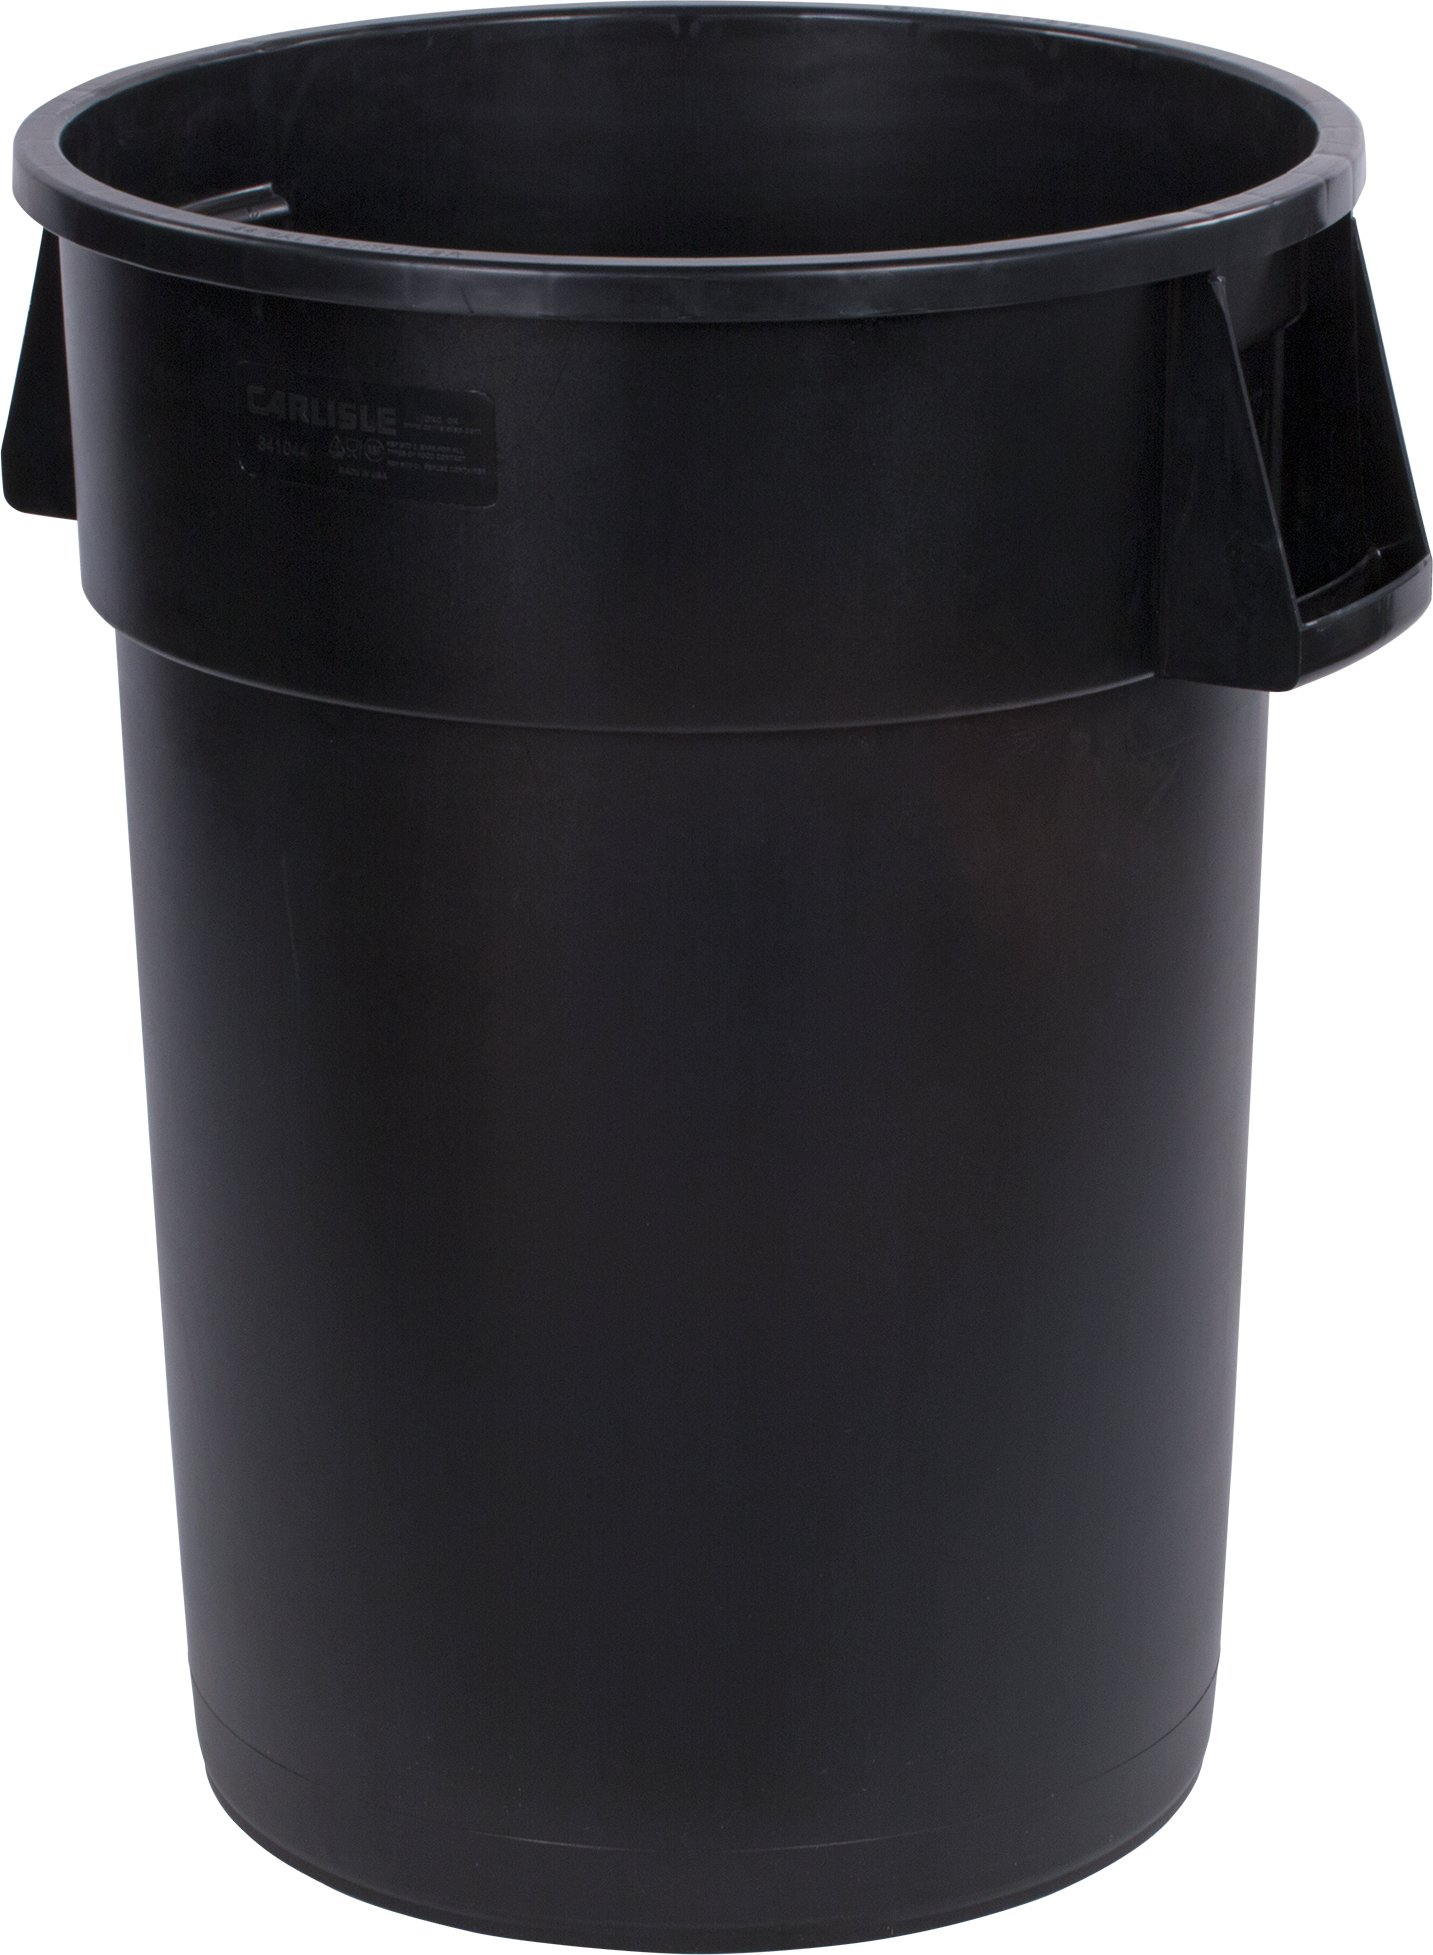 Carlisle 34104403 Bronco Round Waste Container Only, 44 Gallon, Black